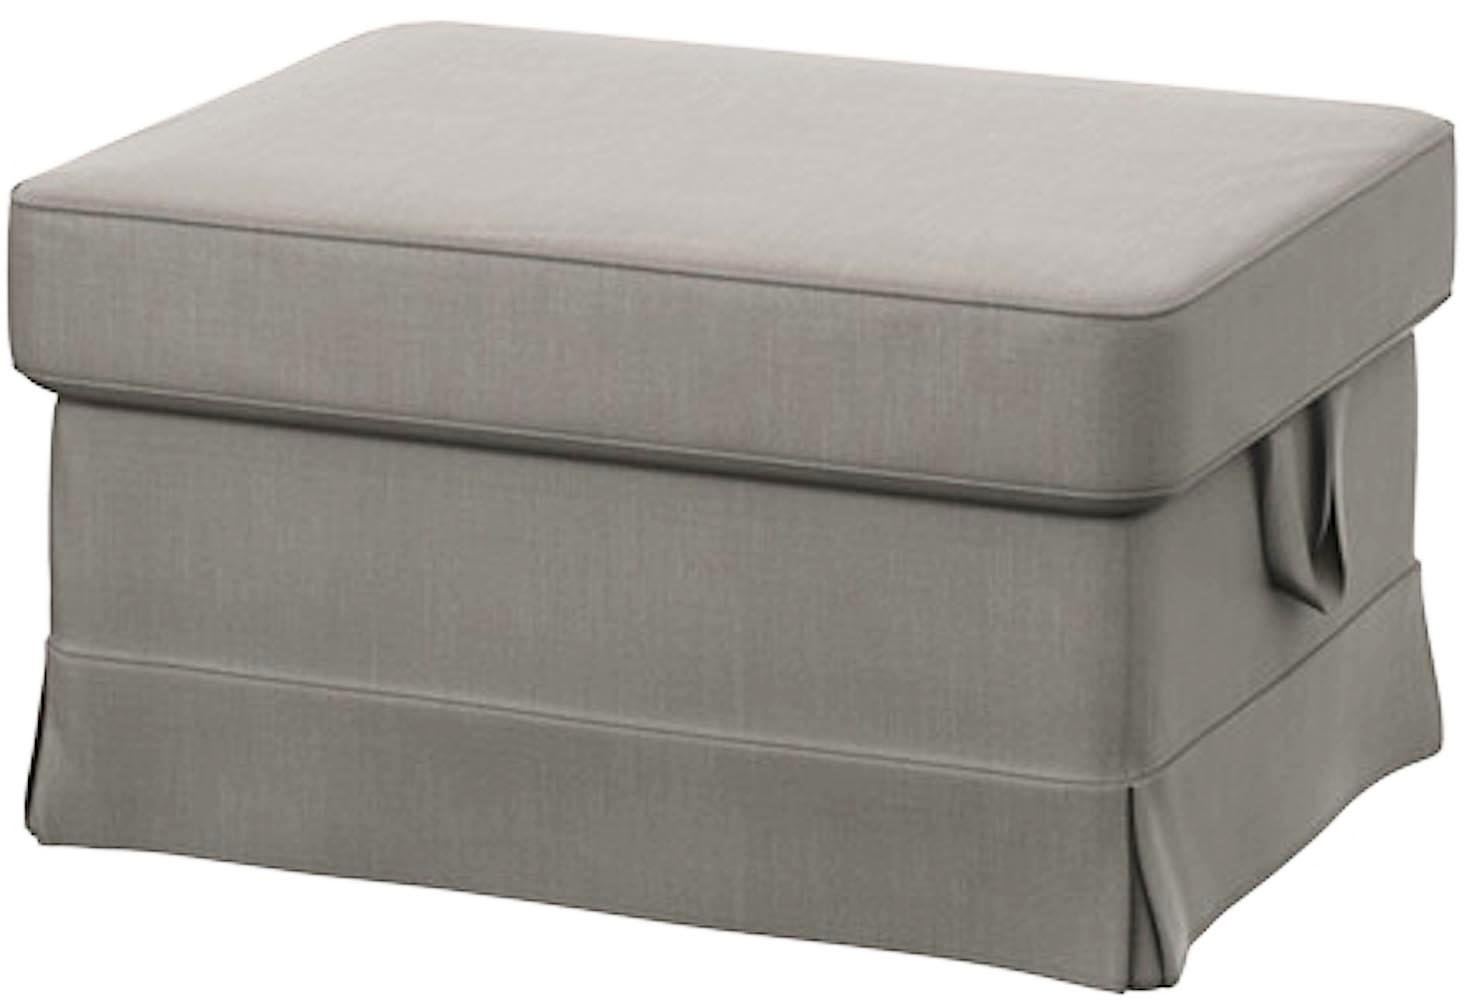 Easy Fit The Light Gray Ektorp Footstool Cover Replacement is Custom Made for IKEA Ektorp Ottoman Or Stool Slipcover (Lighter Gray Cotton)